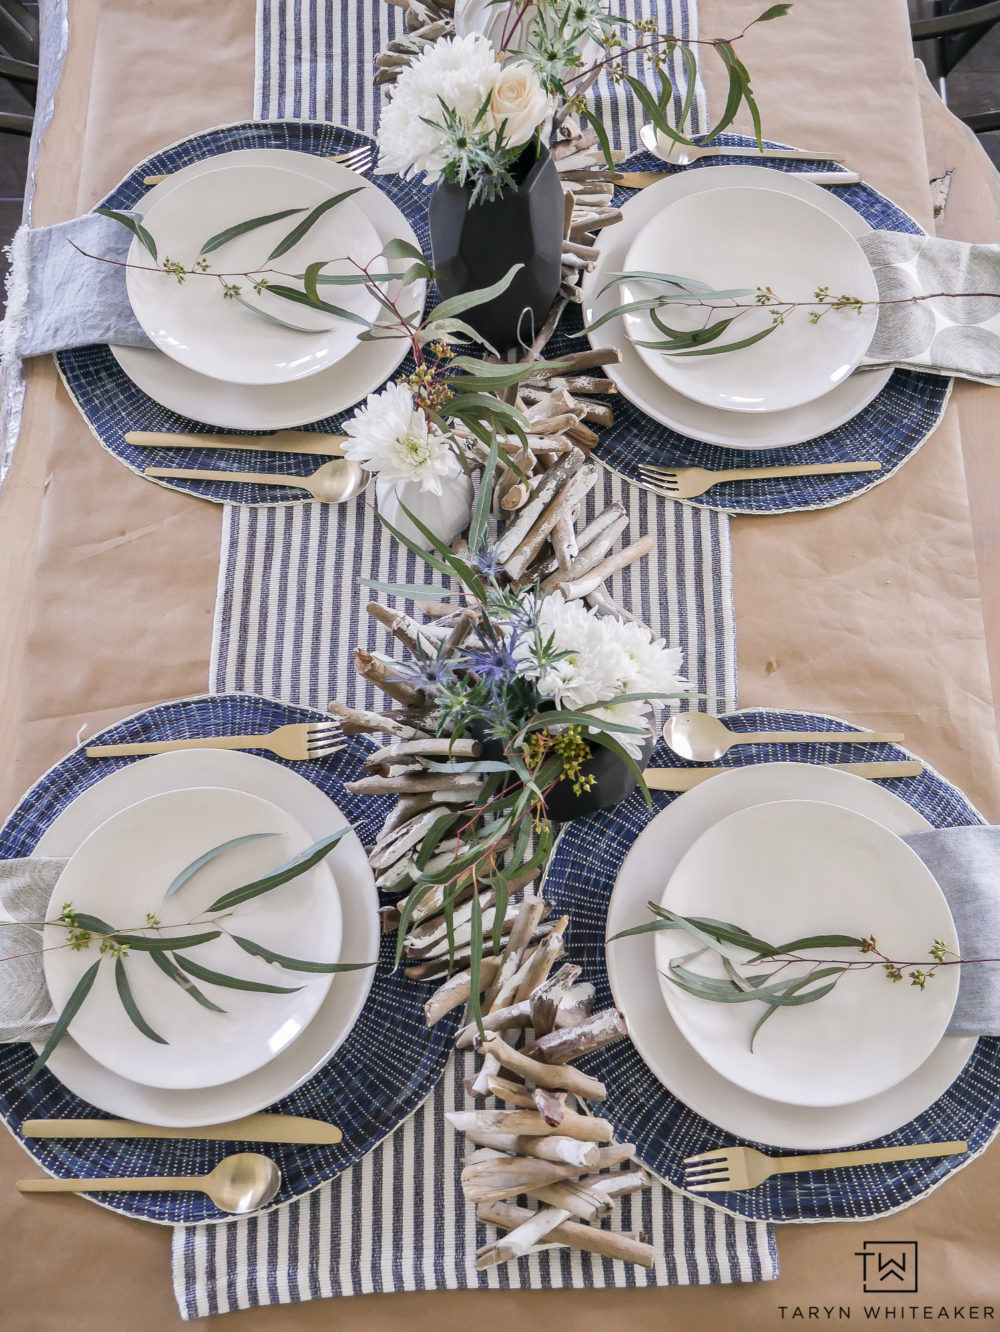 Simple and casual summer table decor featuring navy and white with pops of modern black accessories.